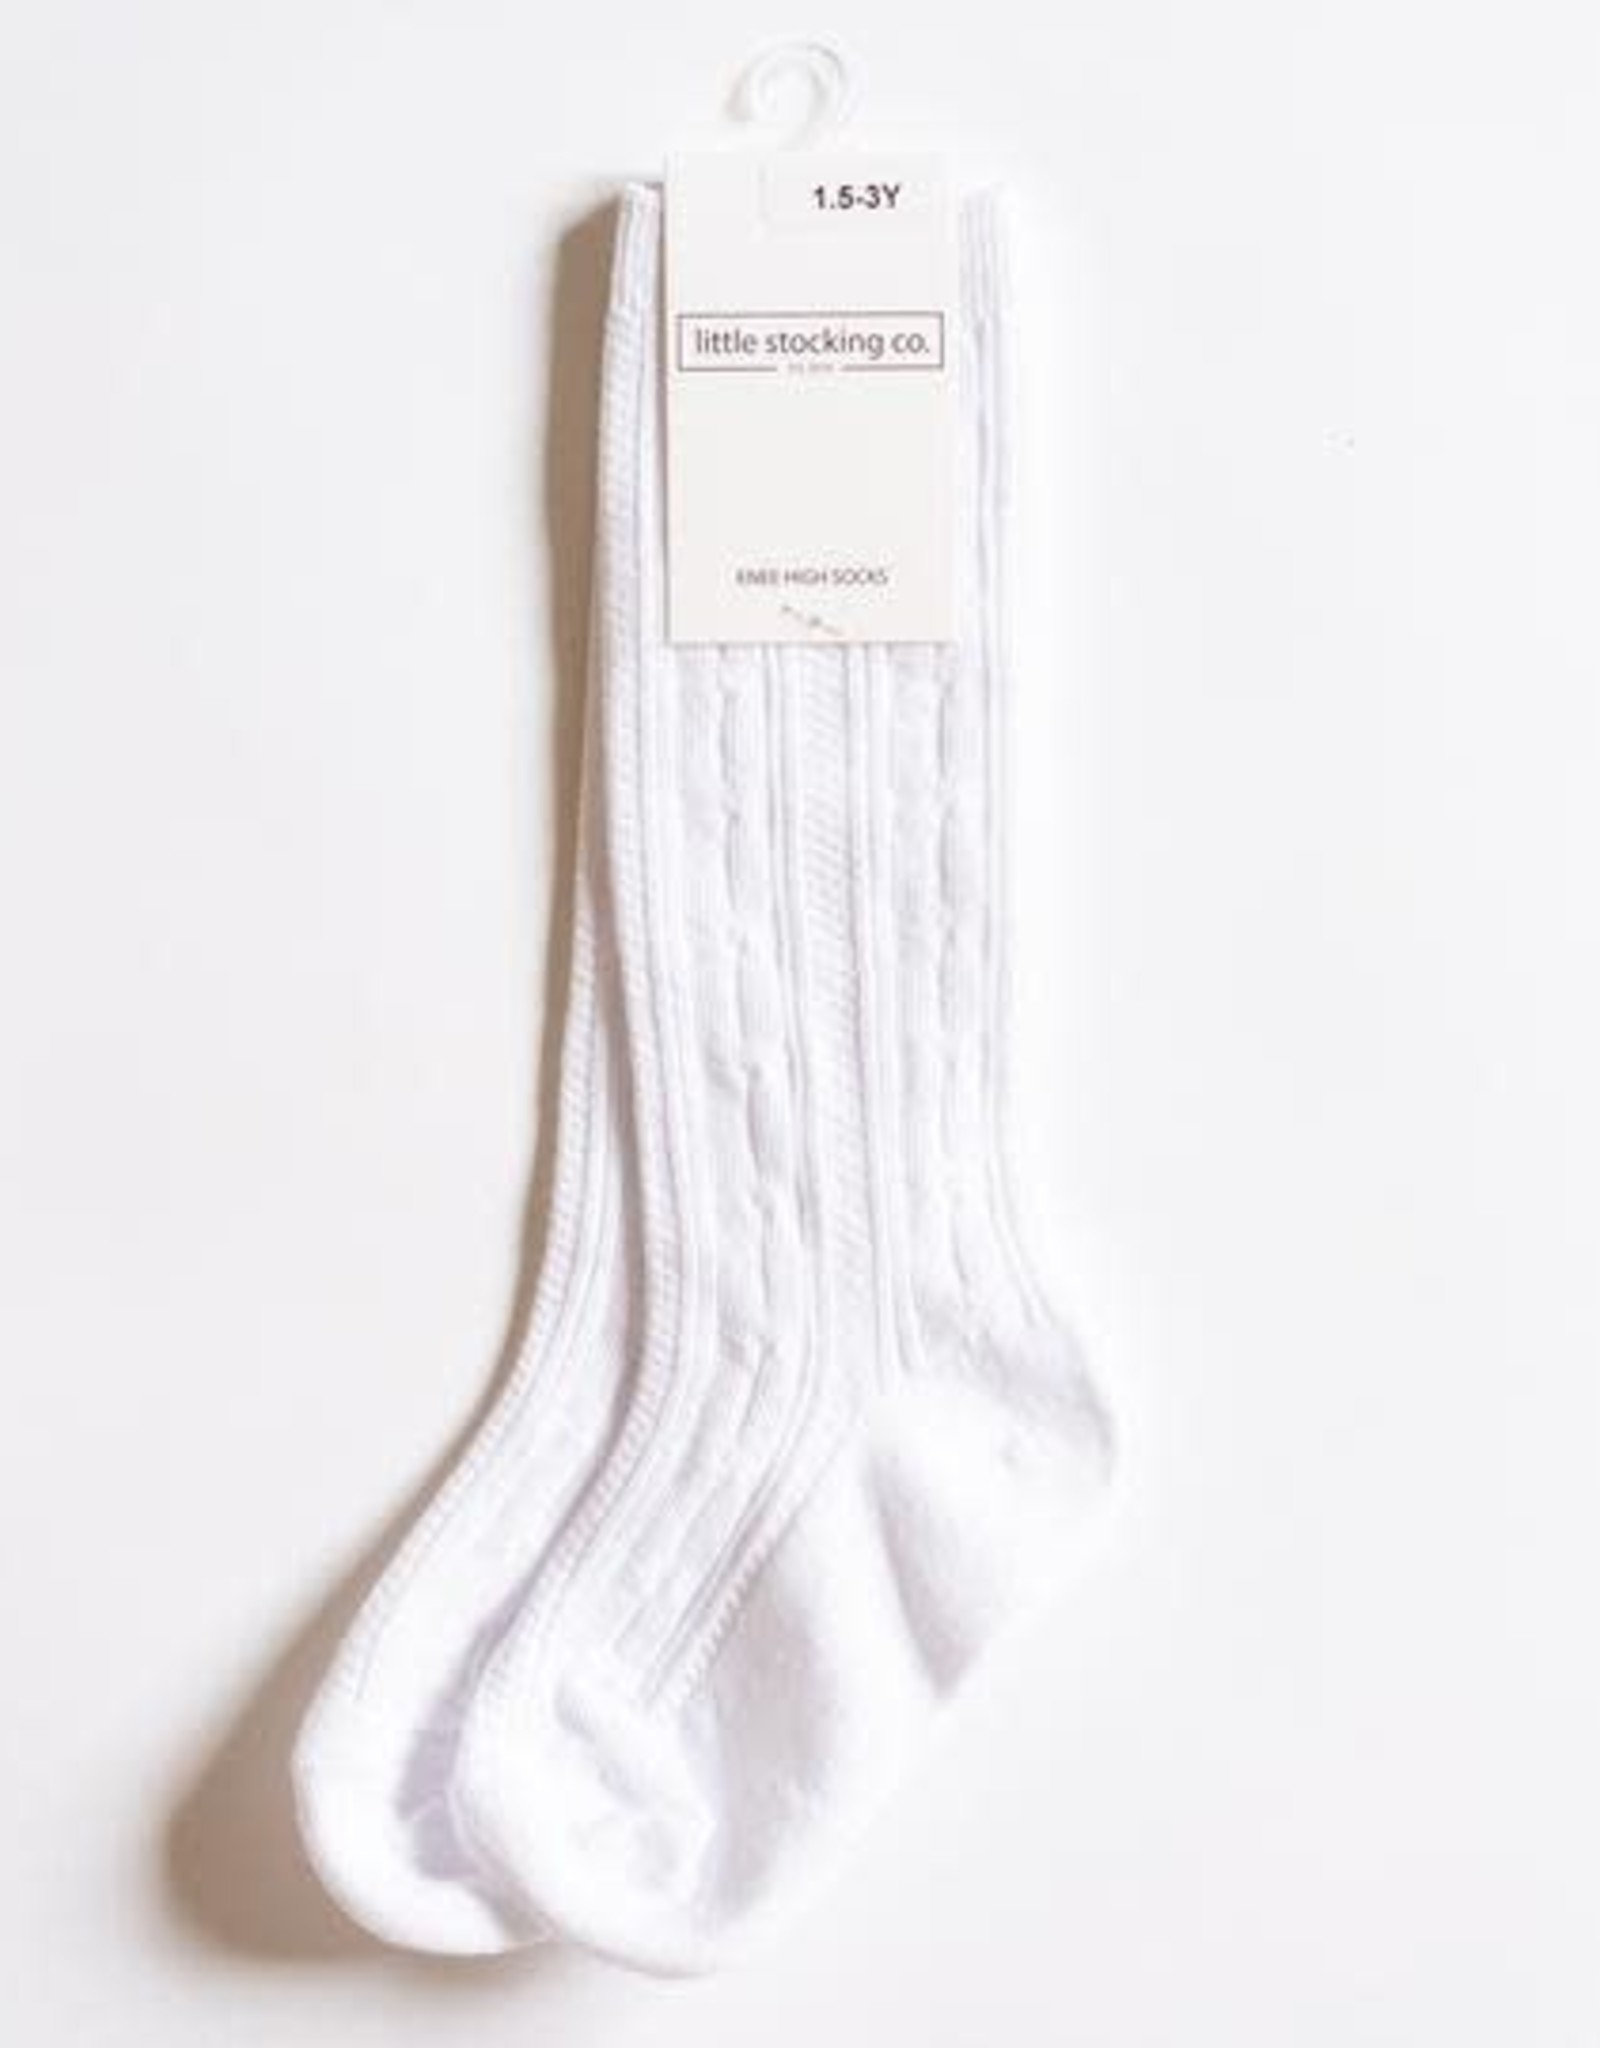 Little Stocking Co Cable Knit Knee High Sock